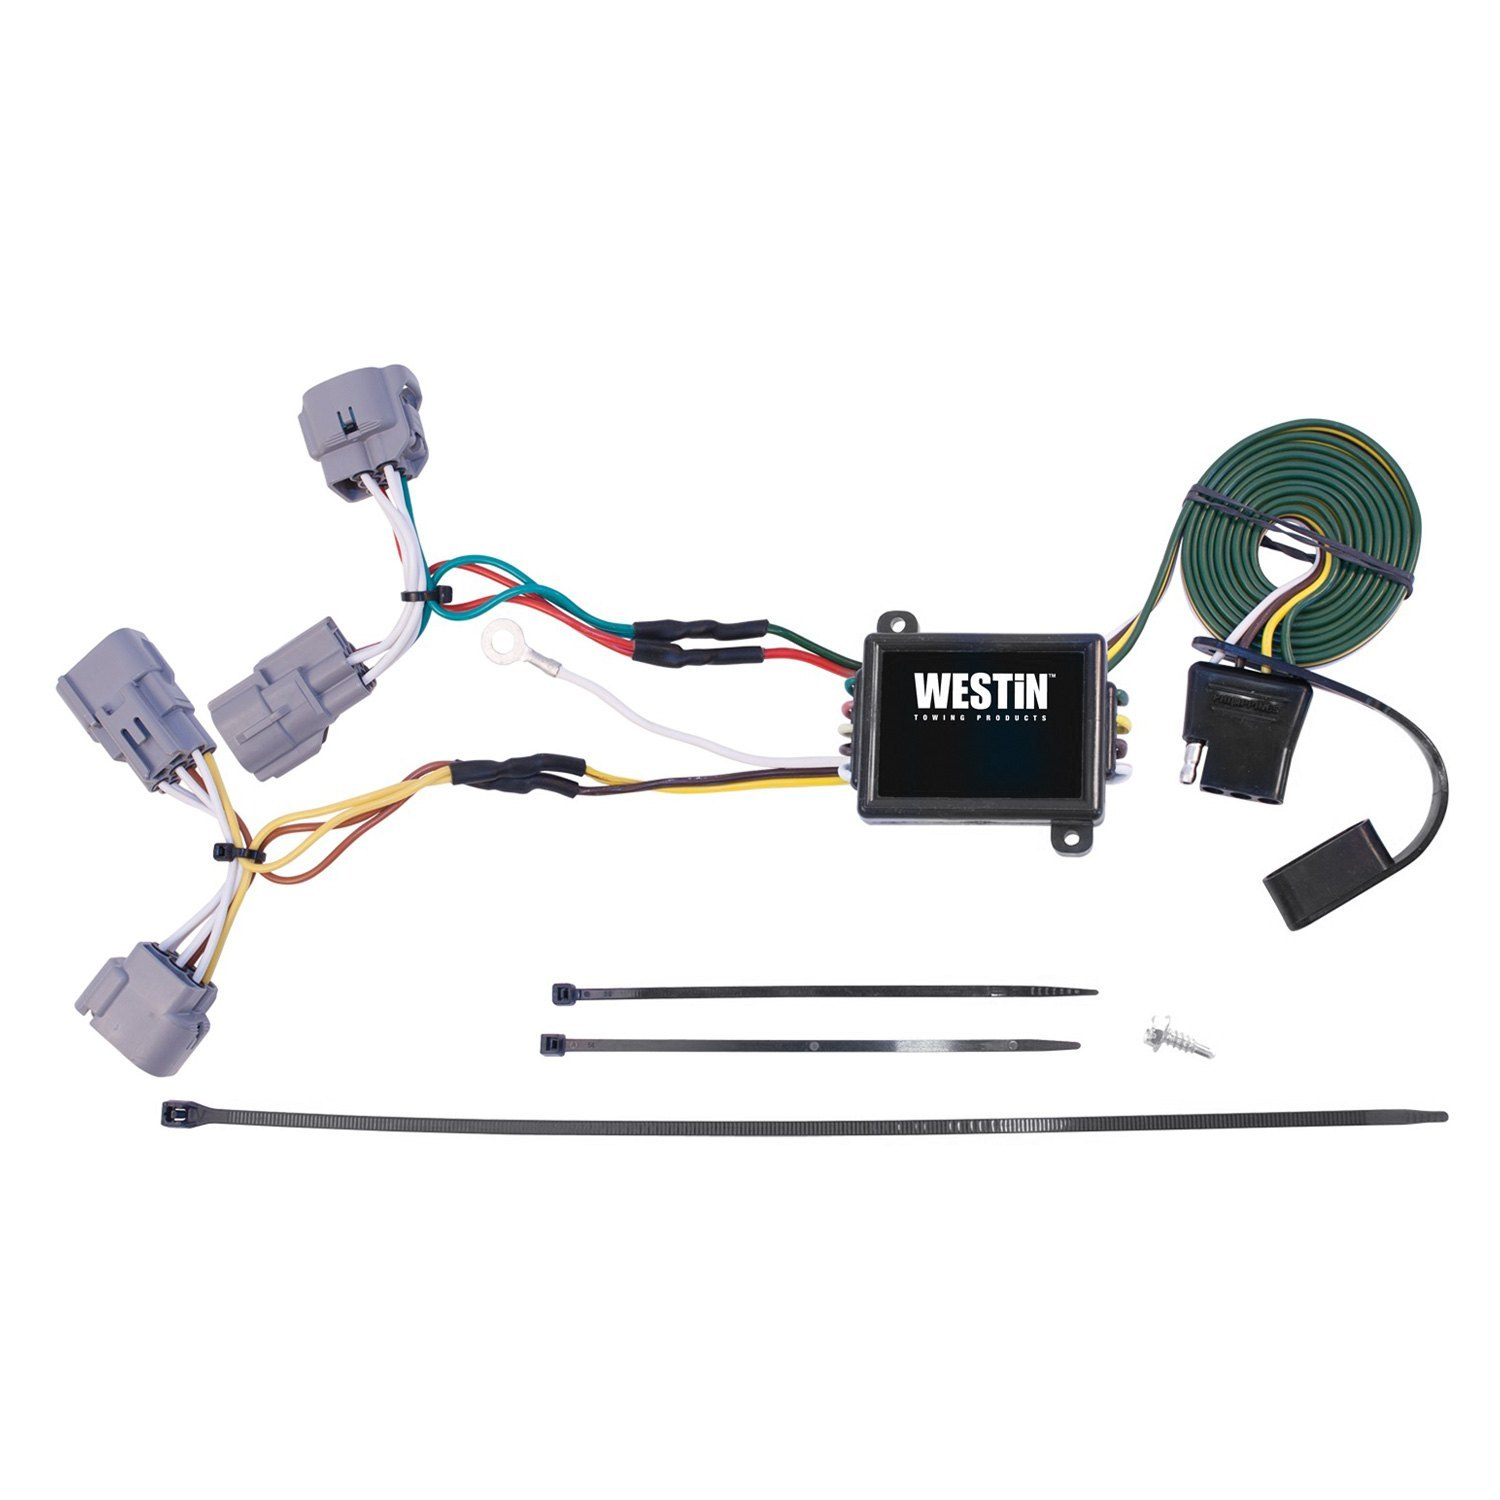 2009 toyota tacoma stereo wiring for toyota tacoma 2005-2009 westin 65-65002 towing wiring ... 1997 toyota tacoma stereo wiring diagram